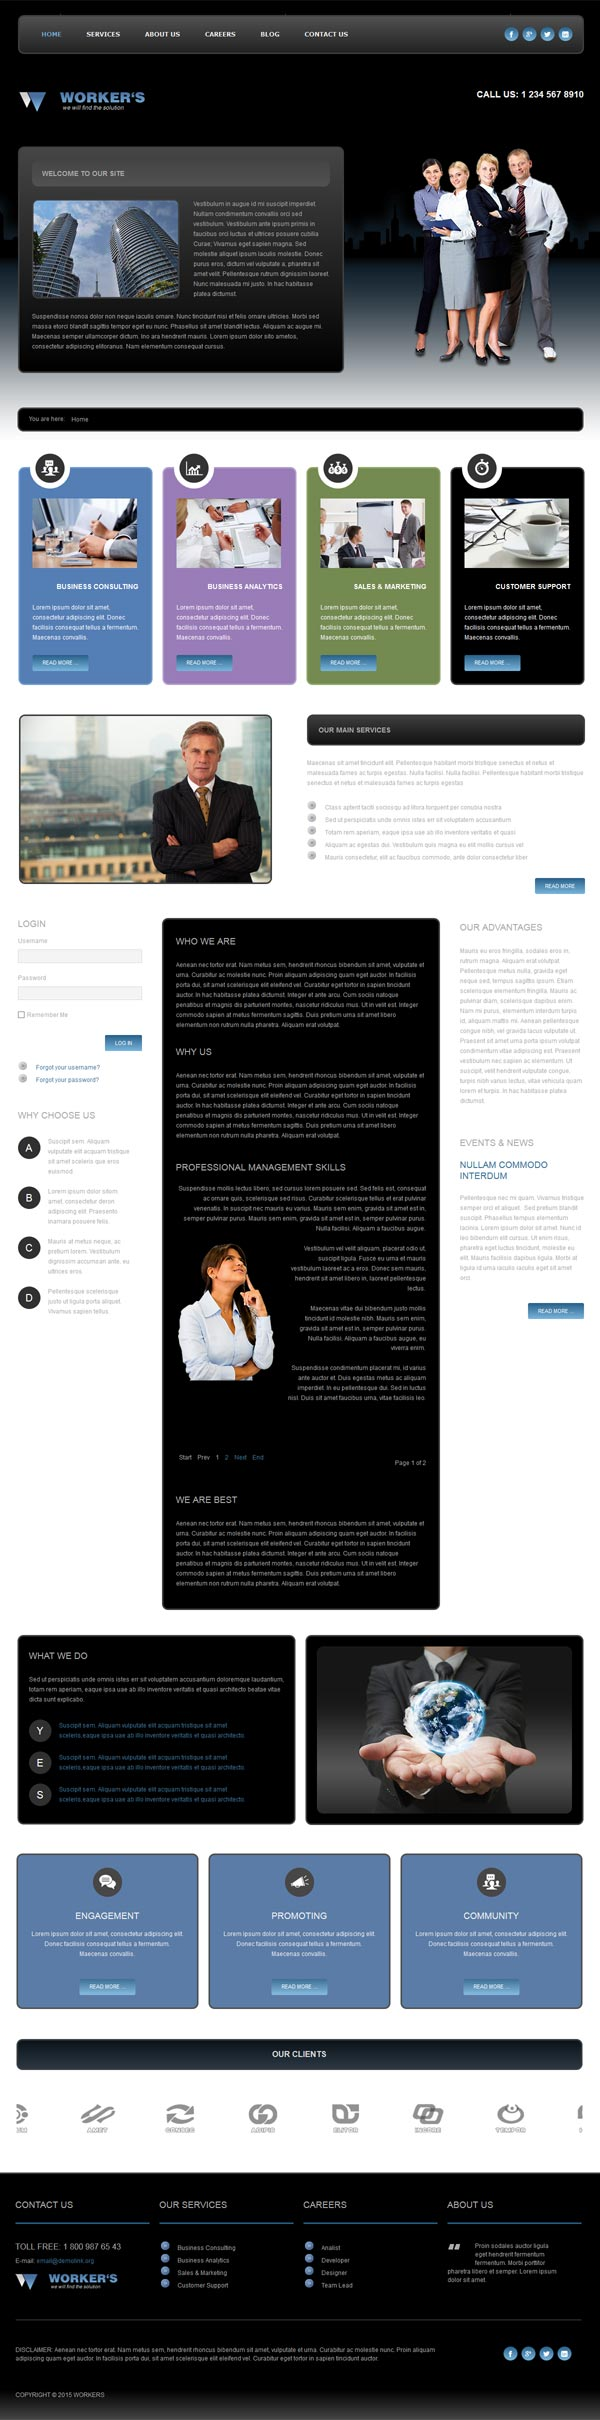 Business Joomla! template